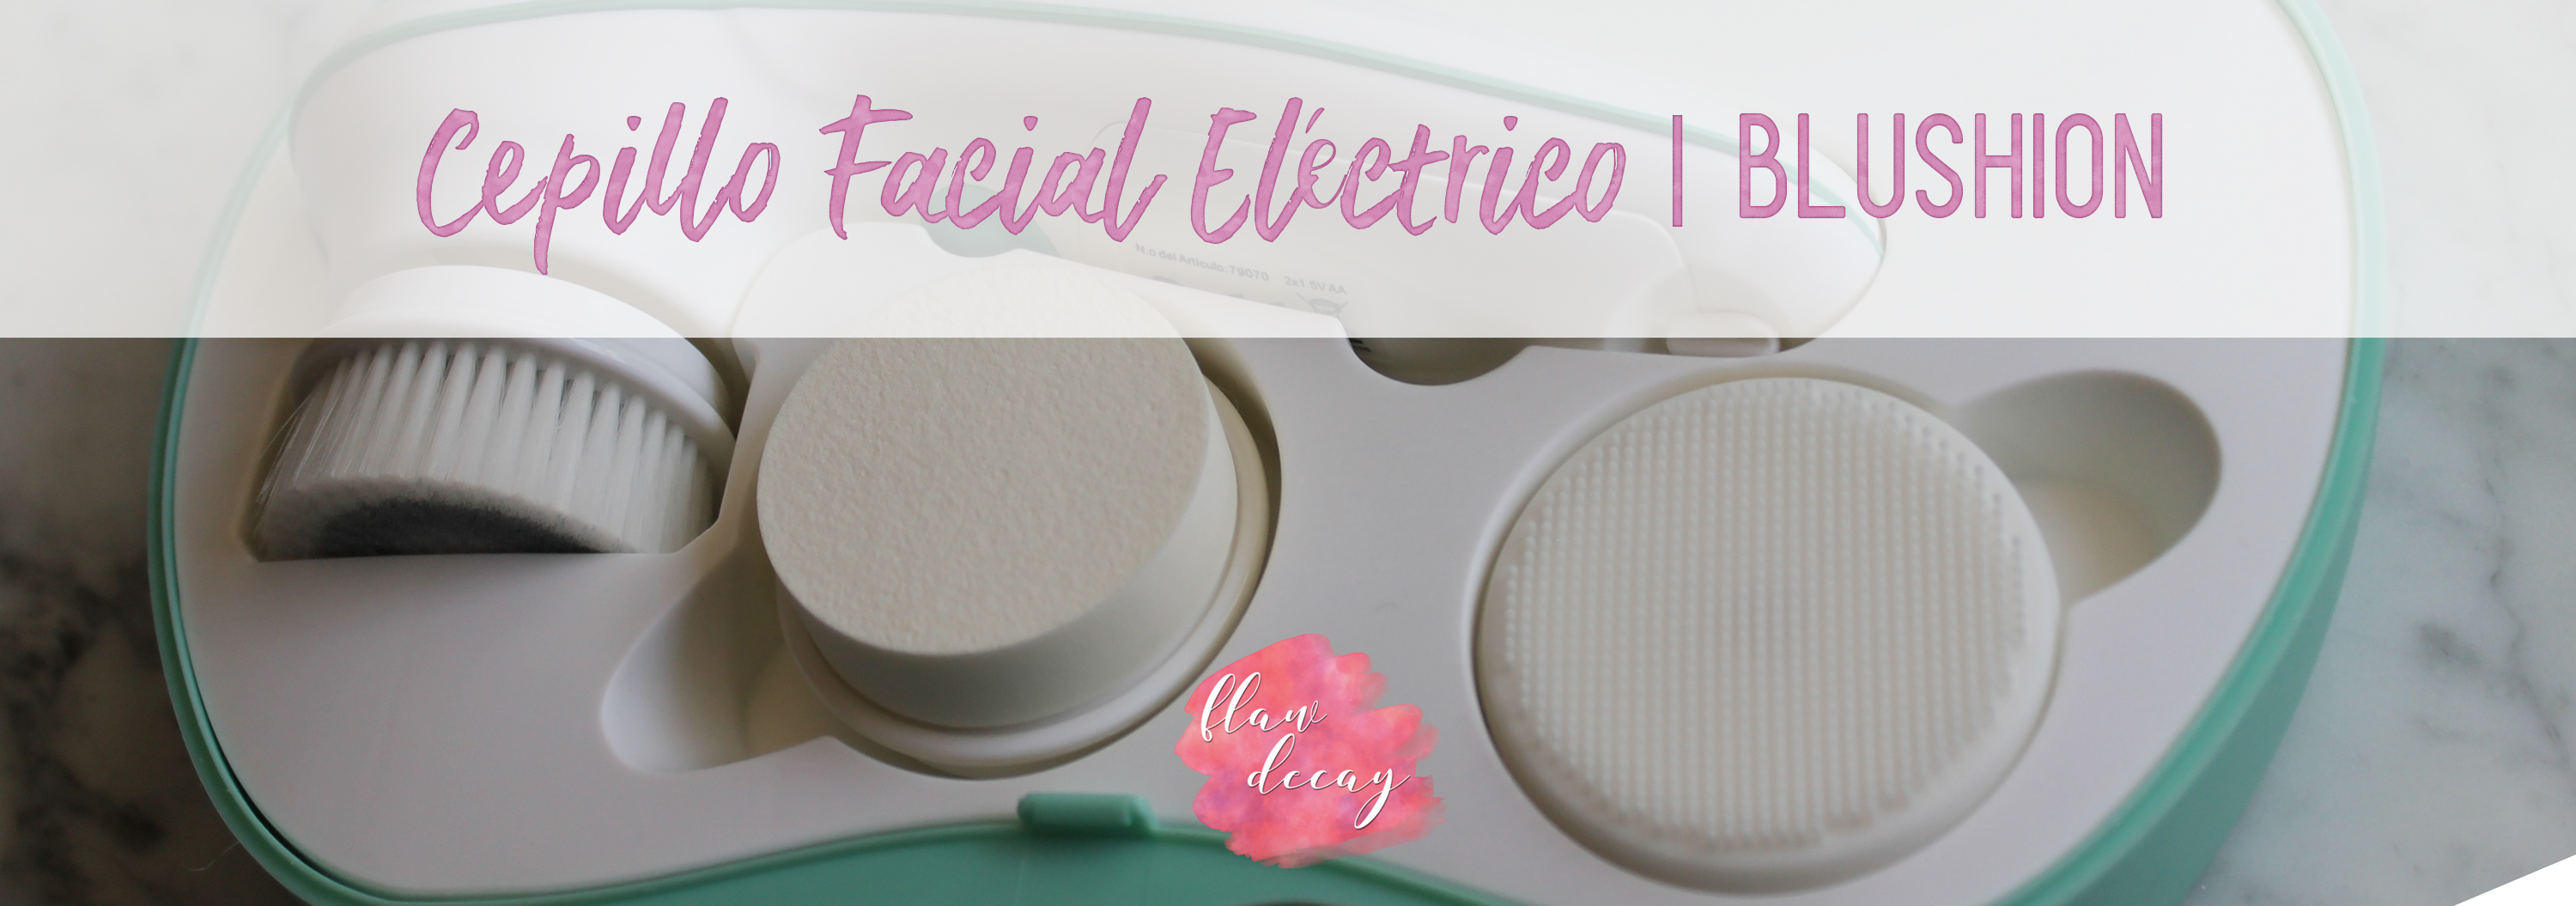 Review: Cepillo Facial Eléctrico de Blushion